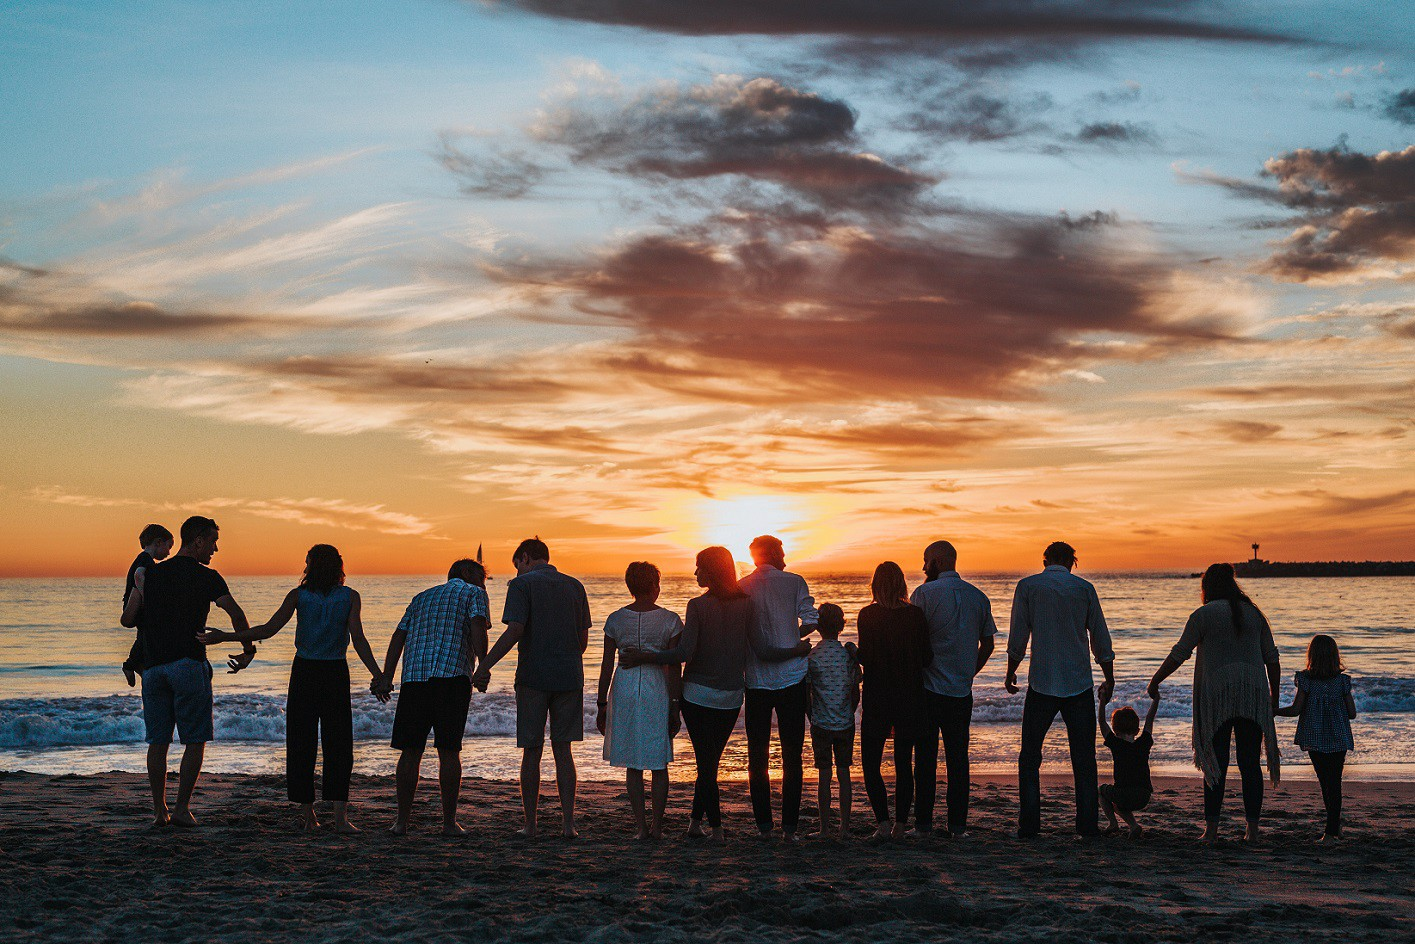 Multiple families enjoying time on a beach at sunset